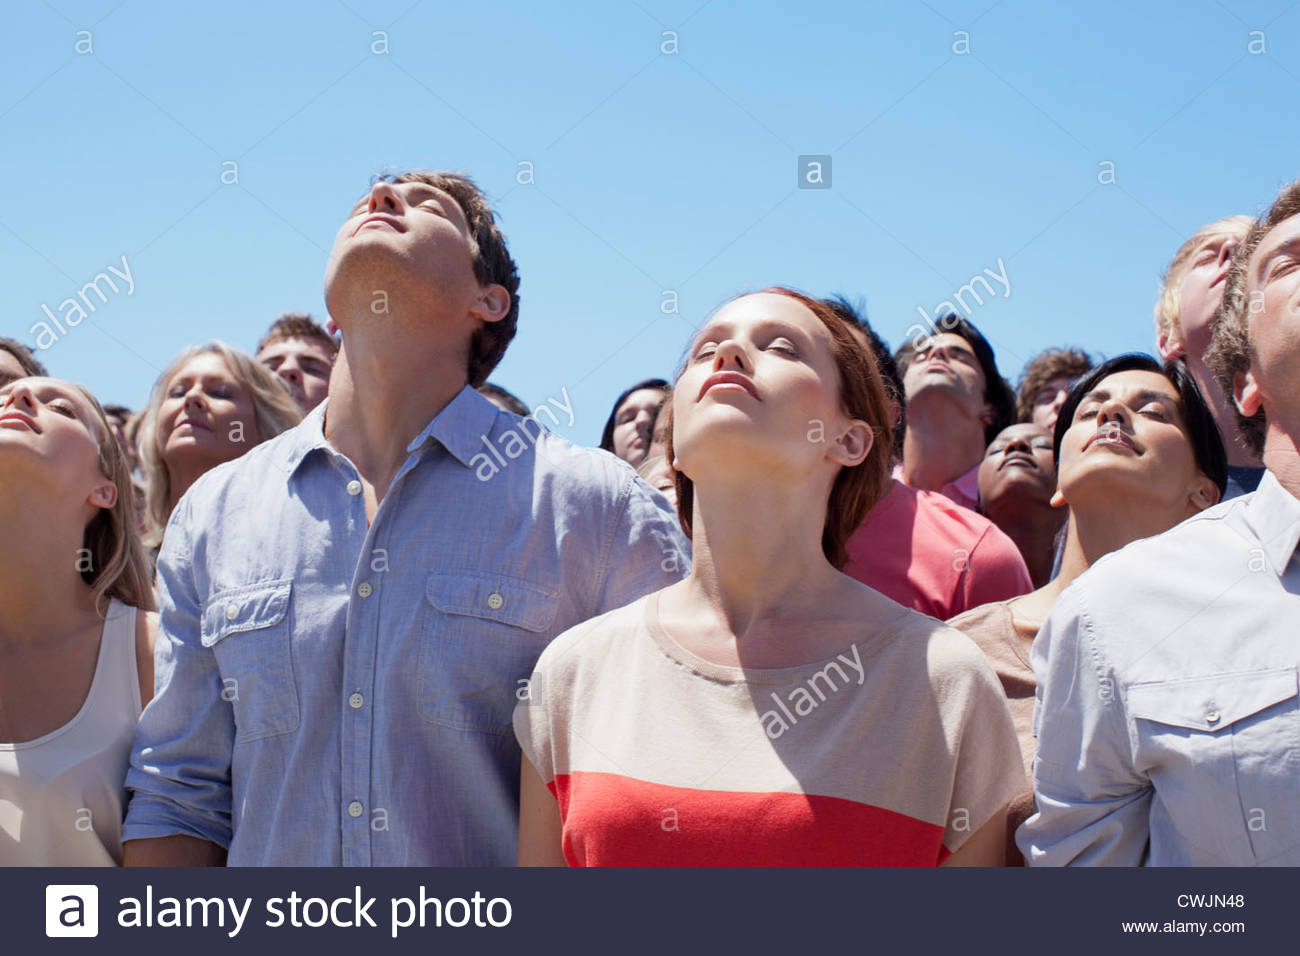 Serene people with heads back in crowd - Stock Image